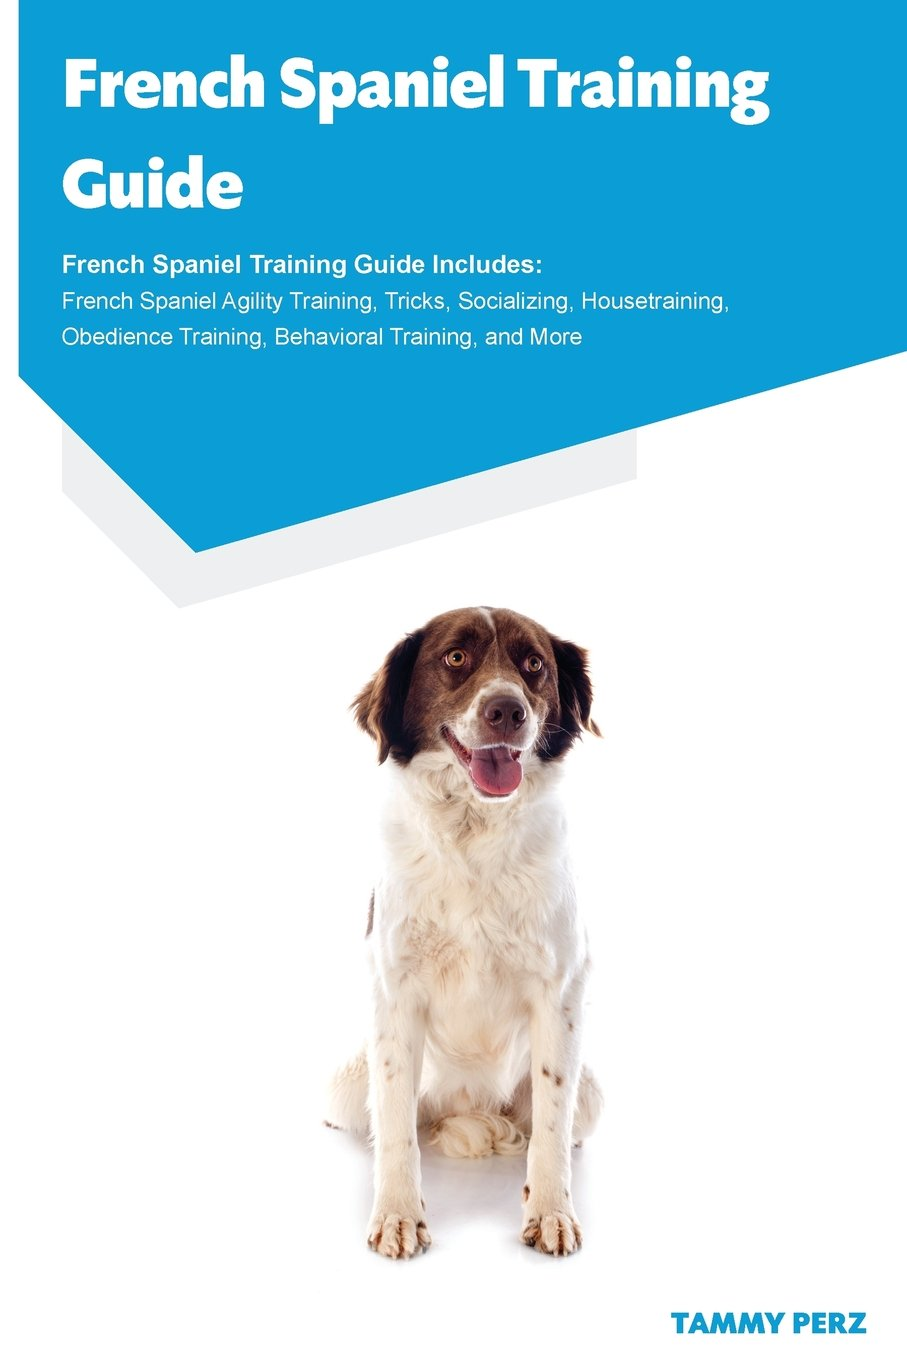 Download French Spaniel Training Guide French Spaniel Training Guide Includes: French Spaniel Agility Training, Tricks, Socializing, Housetraining, Obedience Training, Behavioral Training, and More pdf